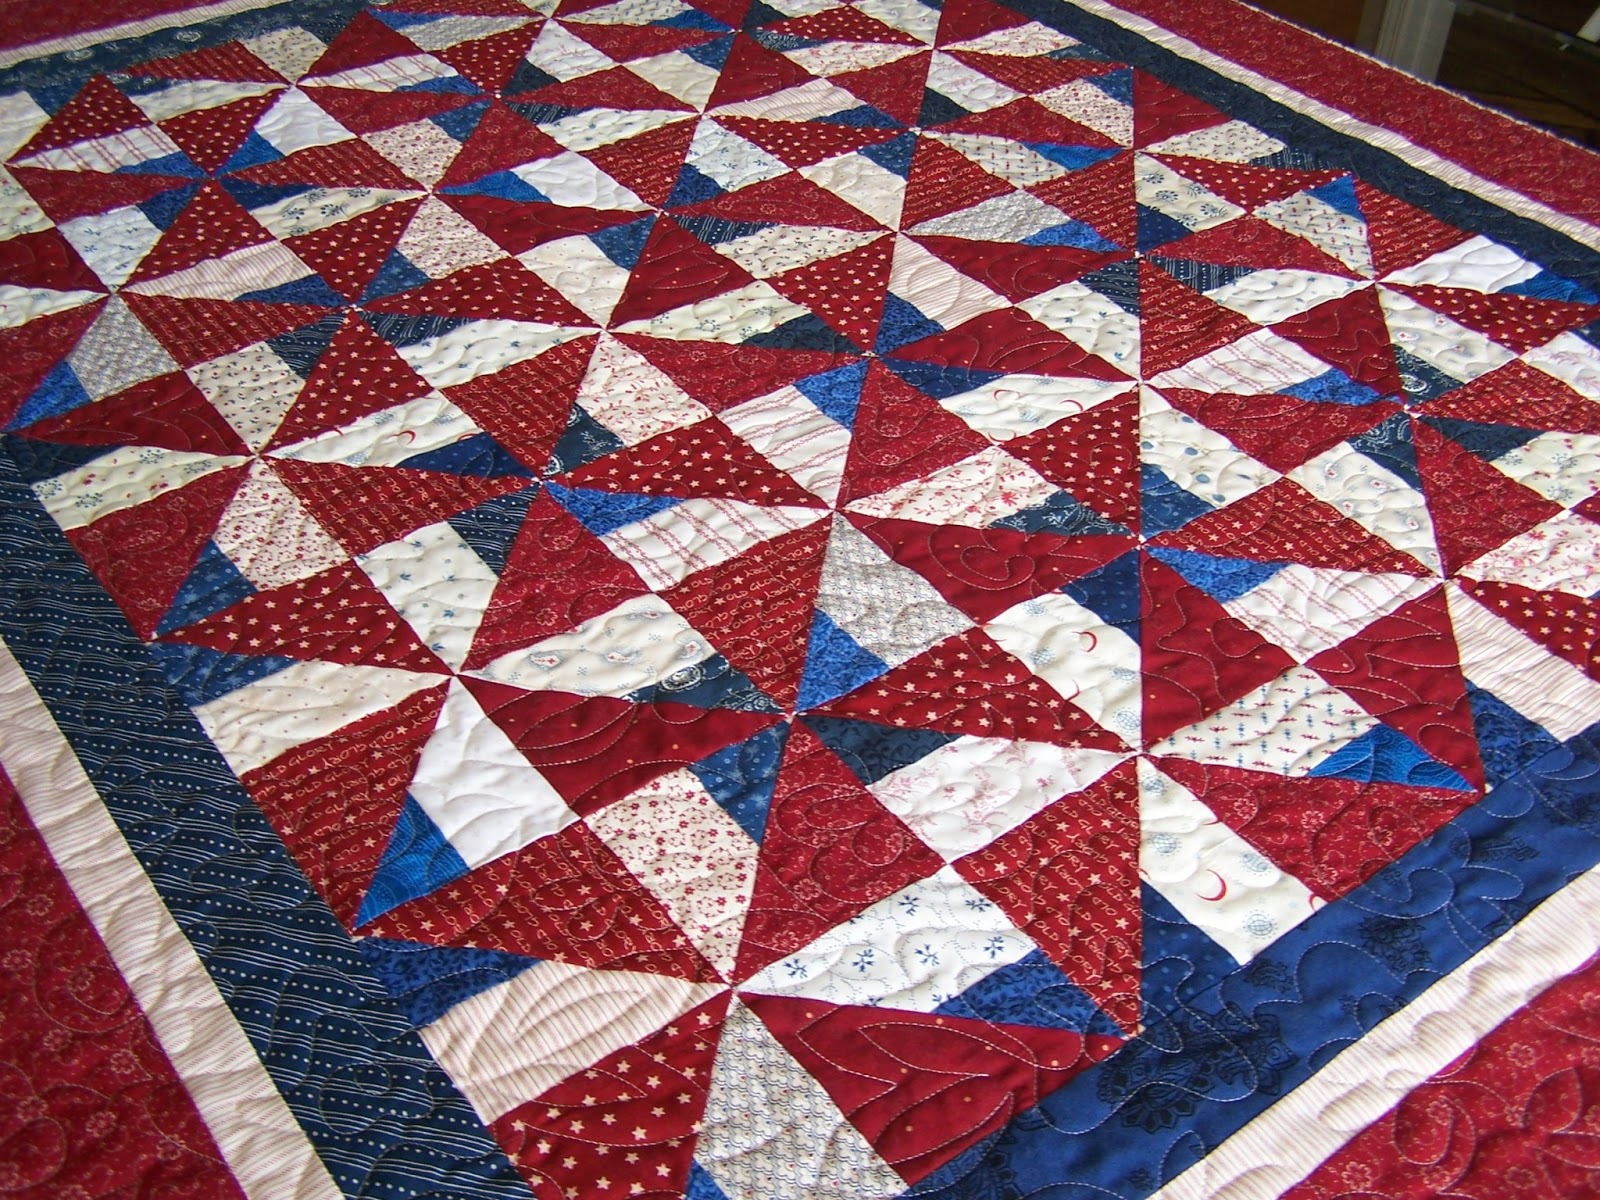 Missouri quilt co chopped block quilt pattern by the for Front door quilt pattern